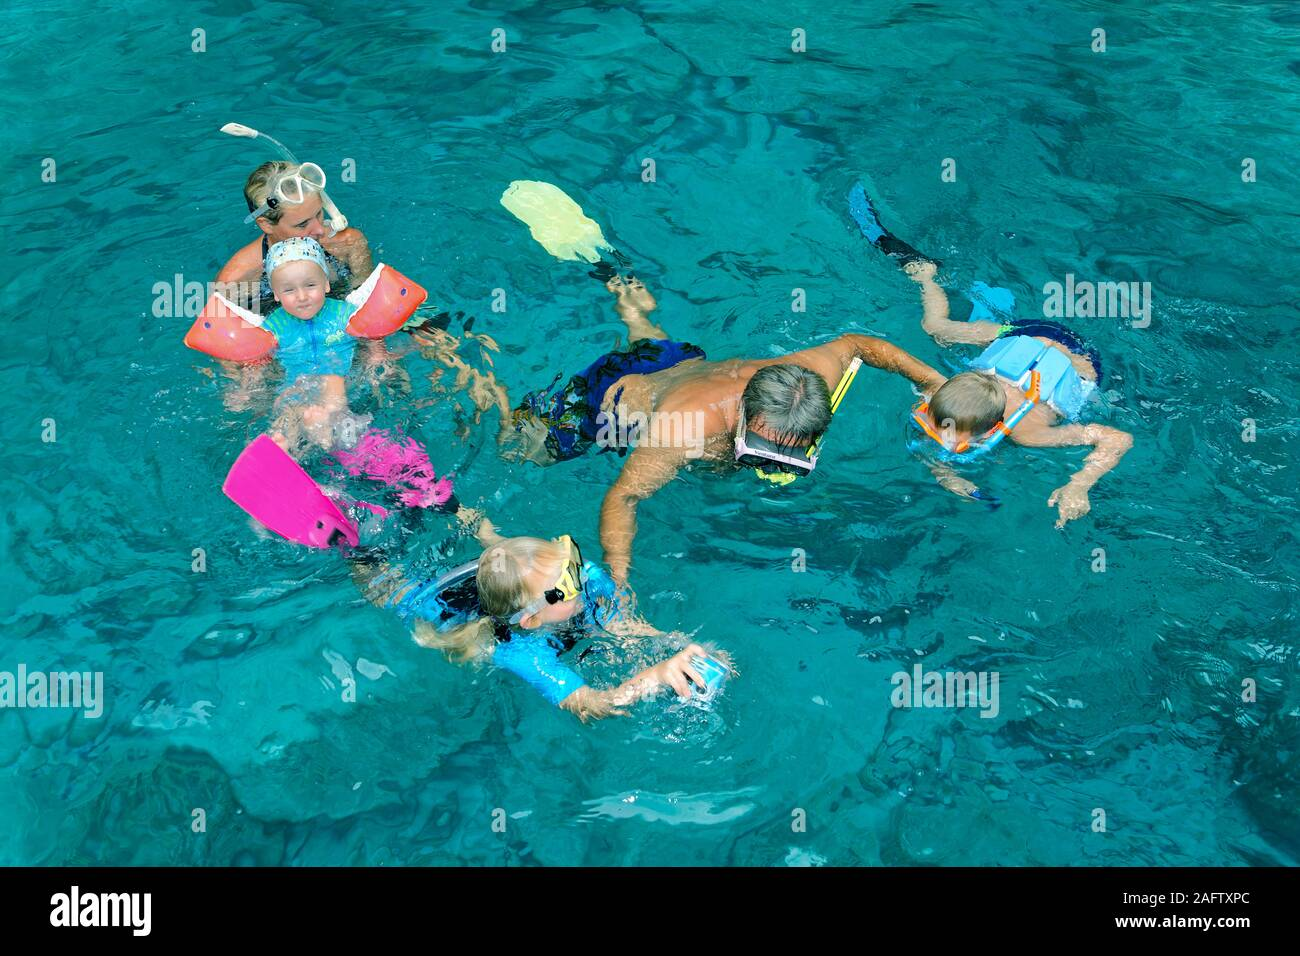 Adult snorkelling with children in Mediterranean sea, Zakynthos island, Greece Stock Photo